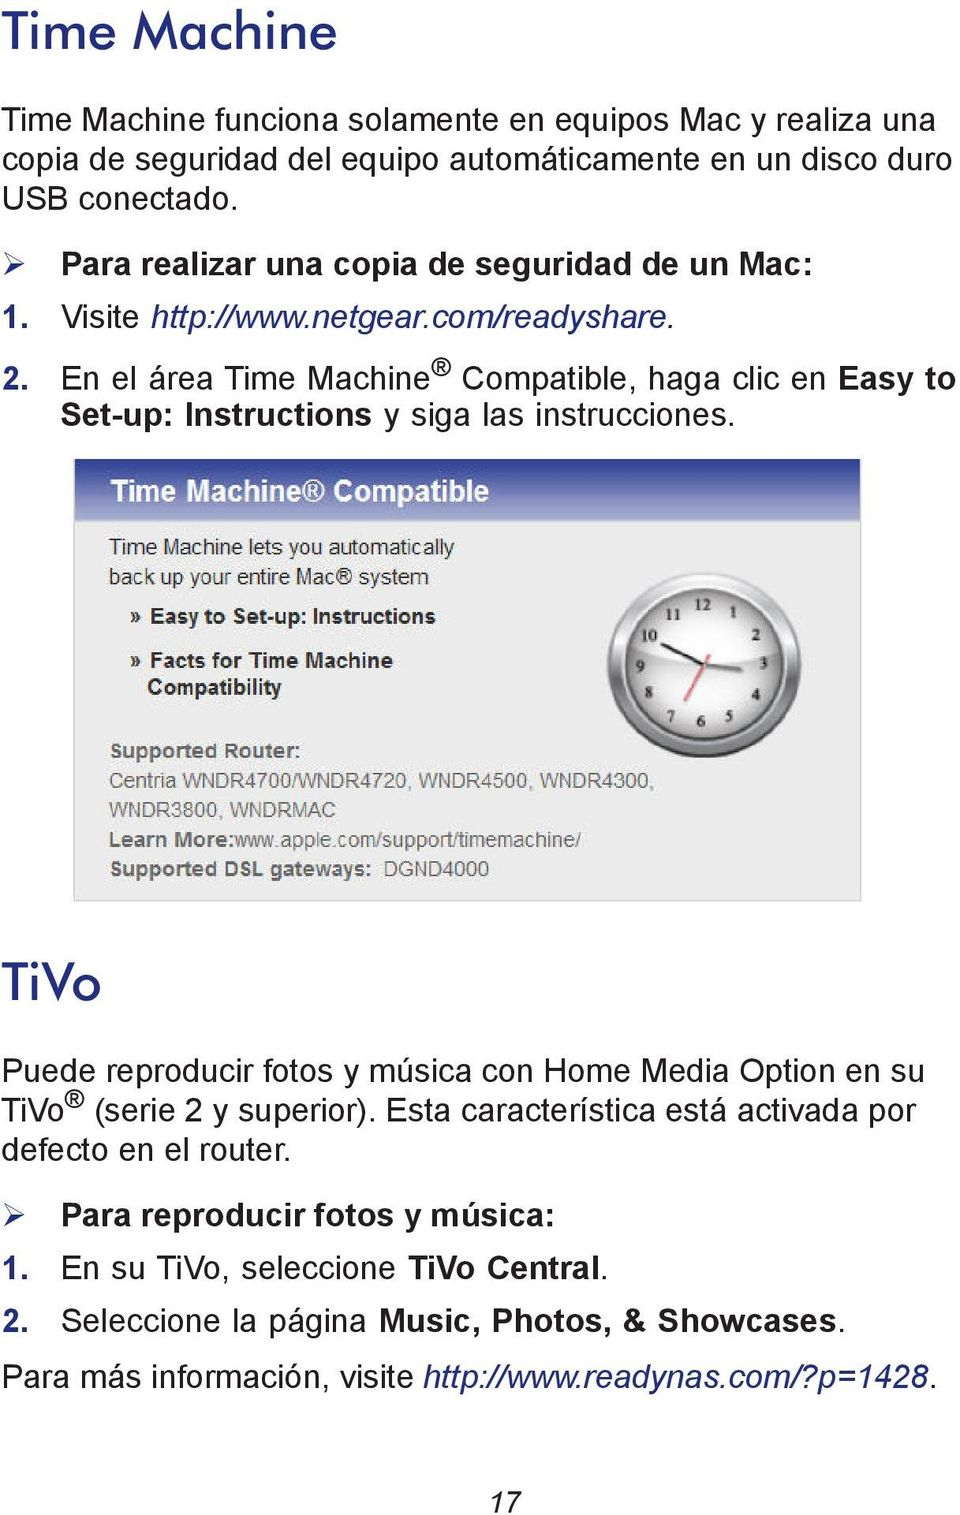 En el área Time Machine Compatible, haga clic en Easy to Set-up: Instructions y siga las instrucciones.